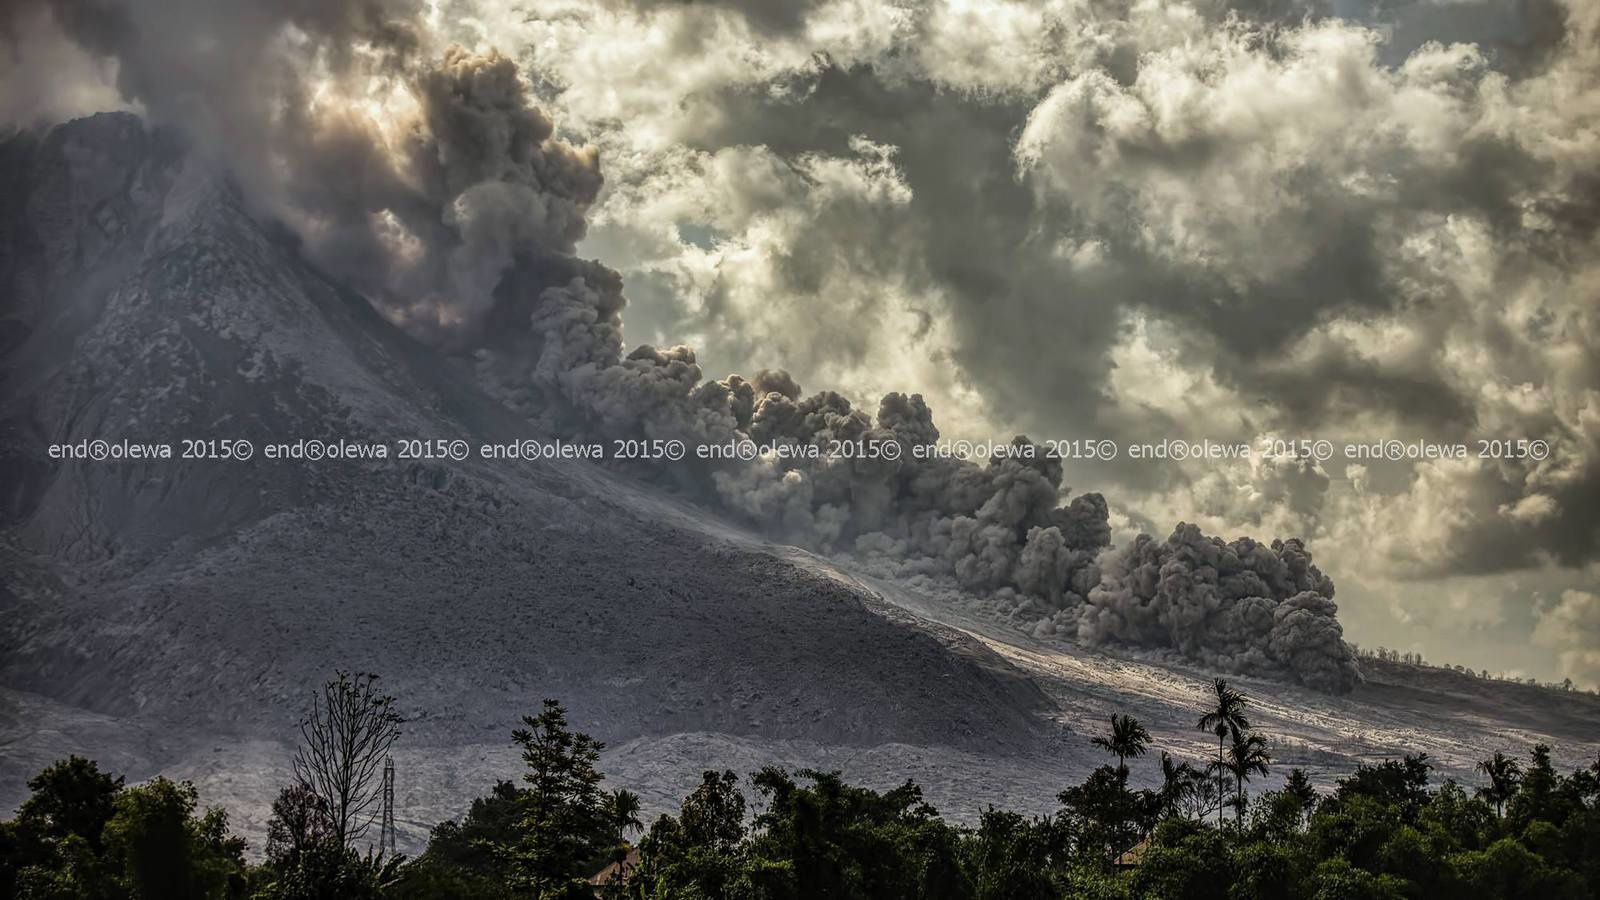 Sinabung - development of the pyroclastic flow of 17.07.2015 / 3:22 p.m. - photo endrolew@